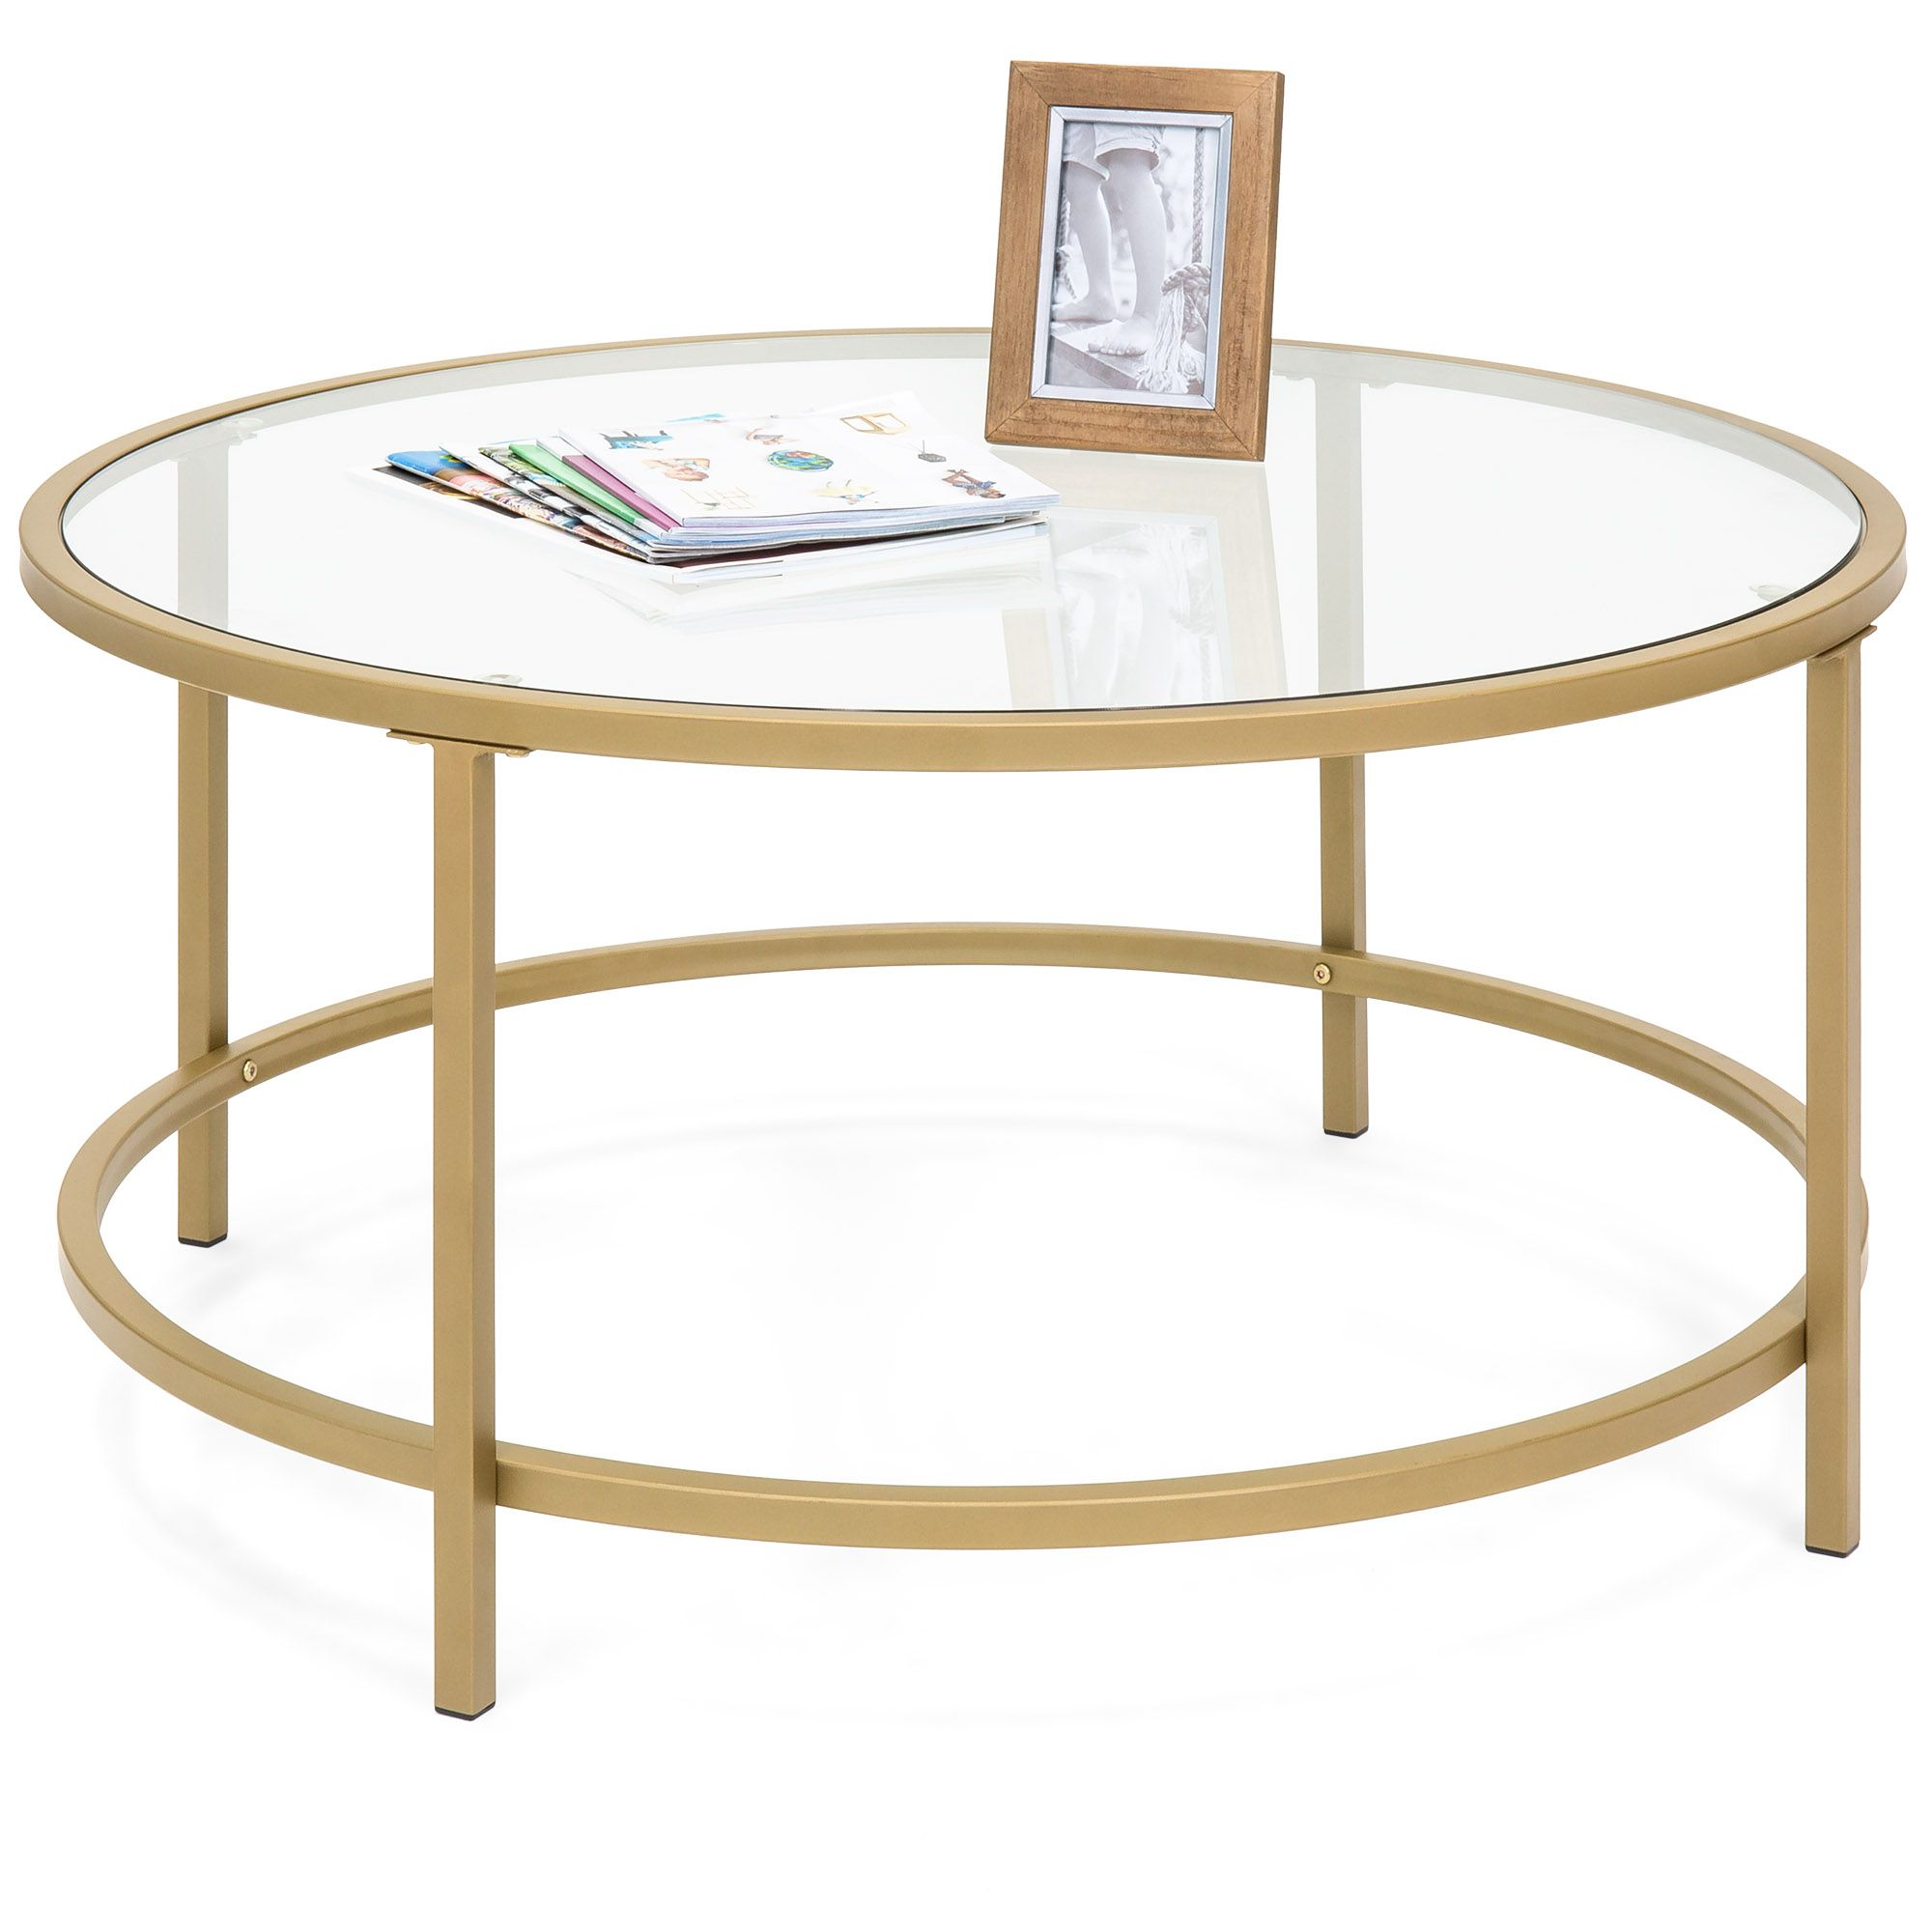 Home In 2020 Round Glass Coffee Table Round Coffee Table Stylish Coffee Table #round #glass #table #for #living #room